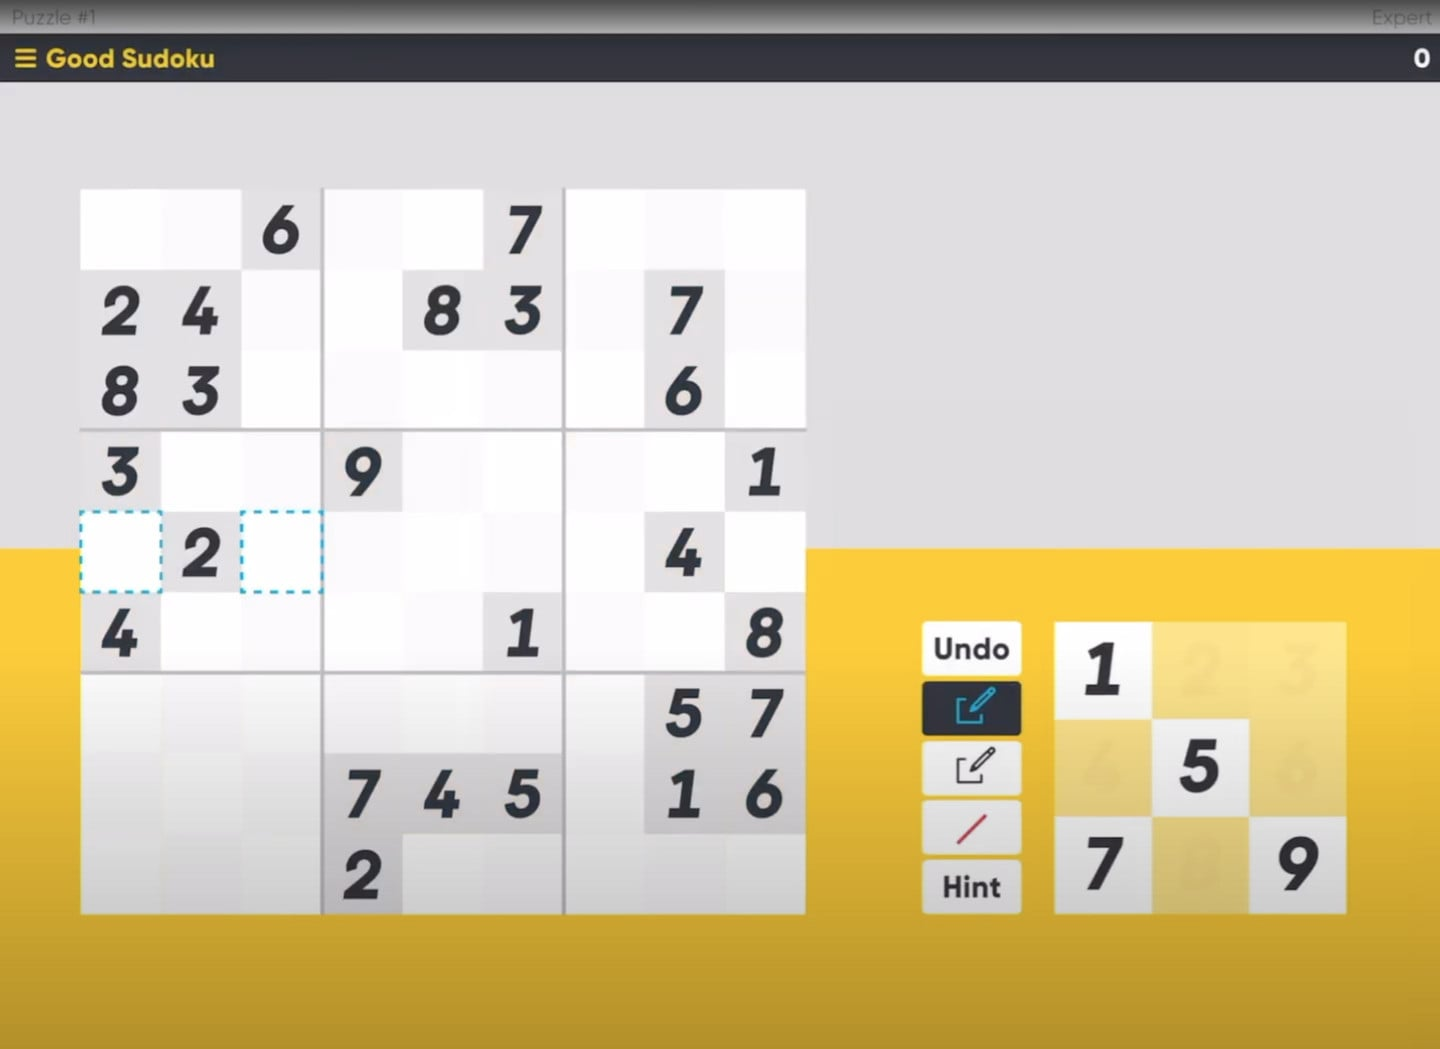 Good Sudoku by Zach Gage Looks to Remake the Classic Game